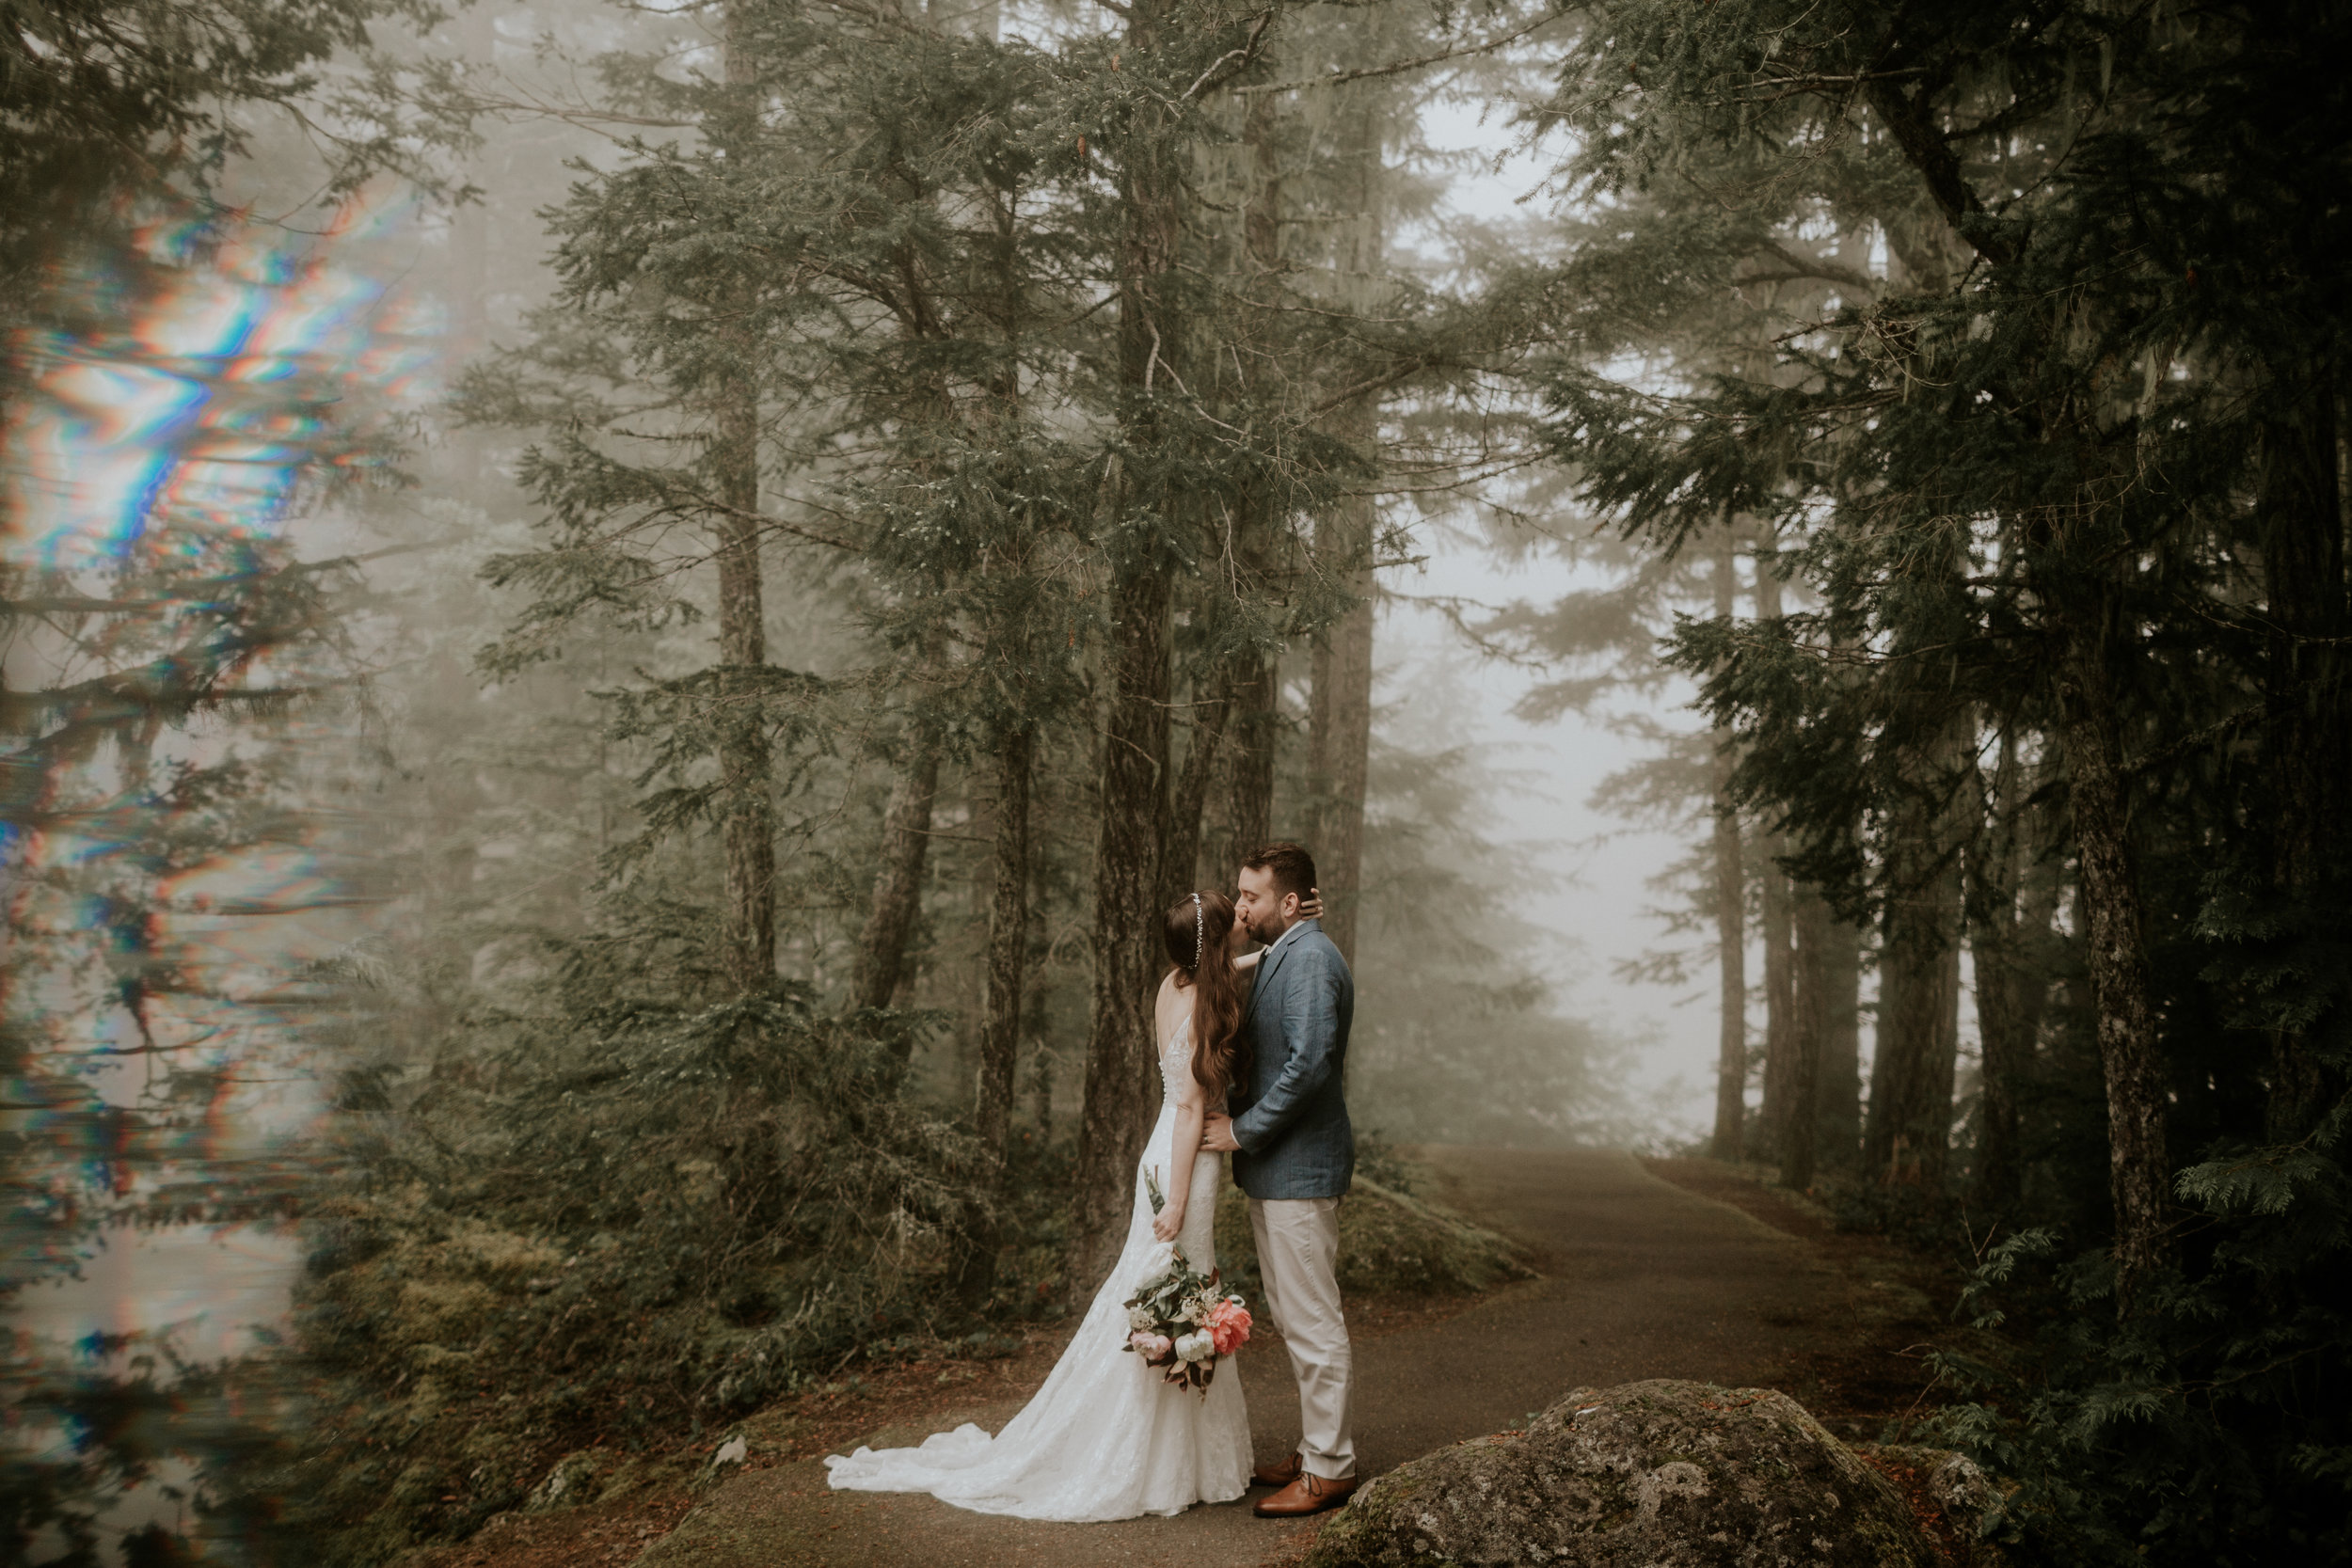 PNW-elopement-wedding-engagement-olympic national park-port angeles-hurricane ridge-lake crescent-kayla dawn photography- photographer-photography-kayladawnphoto-132.jpg